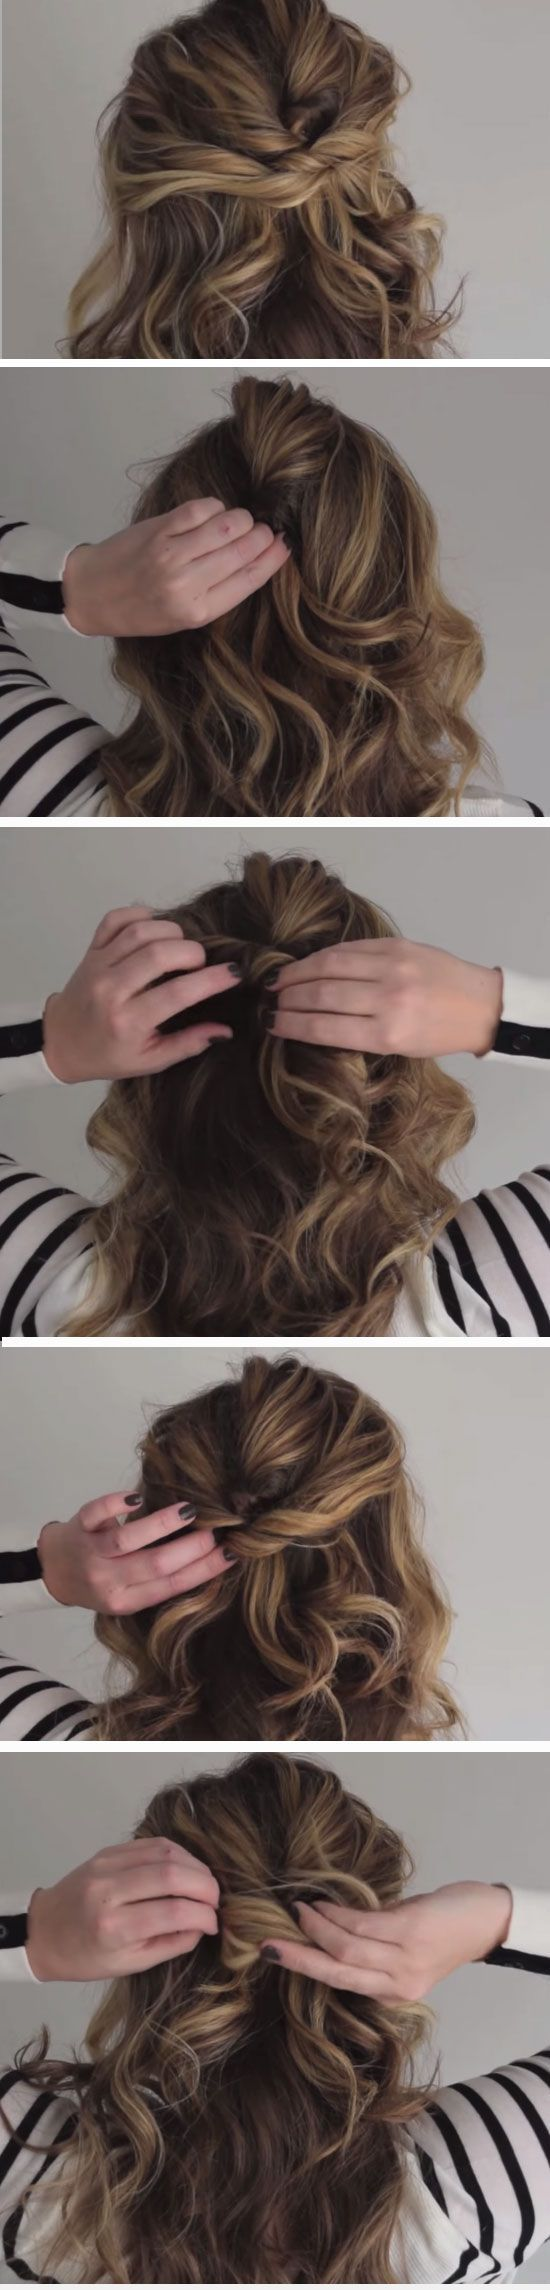 "The Twisted Half Up | DIY Wedding Hairstyles for Medium Hair | Easy Bridesmaids Hairstyles Half Up Curls<p><a href=""http://www.homeinteriordesign.org/2018/02/short-guide-to-interior-decoration.html"">Short guide to interior decoration</a></p>"